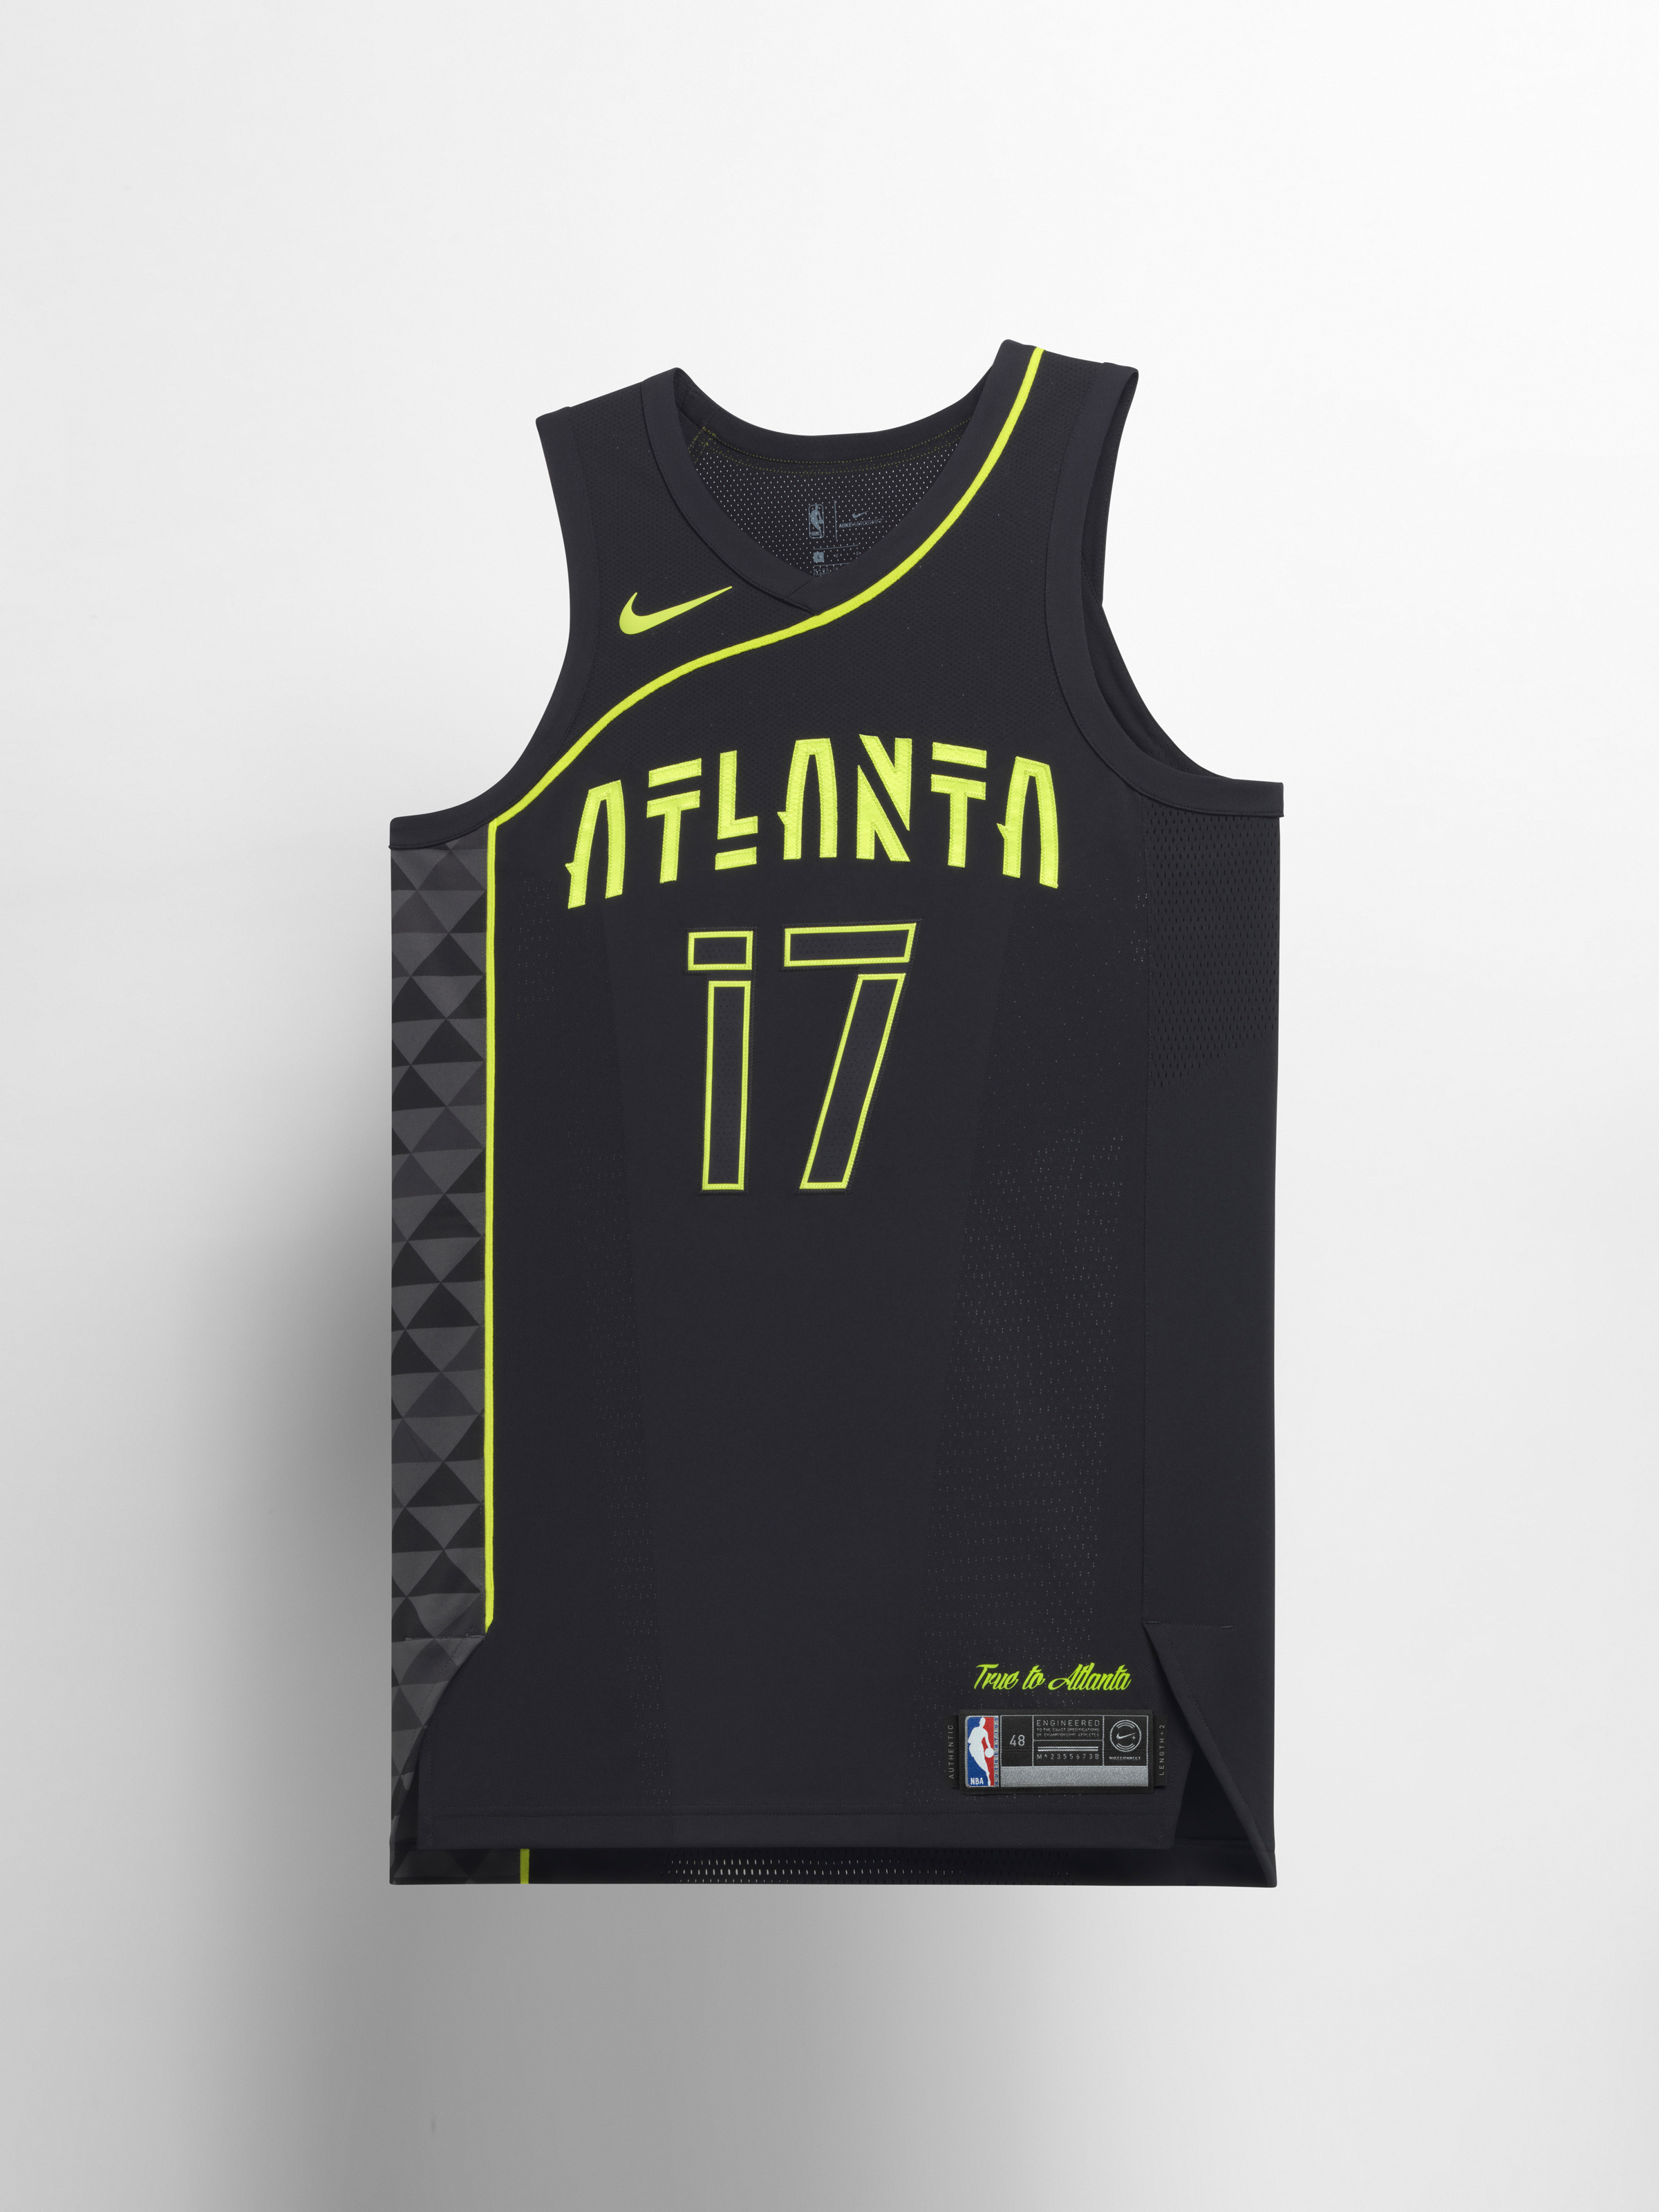 72422ee25a5 Nike unveils City Edition uniforms for 26 NBA teams